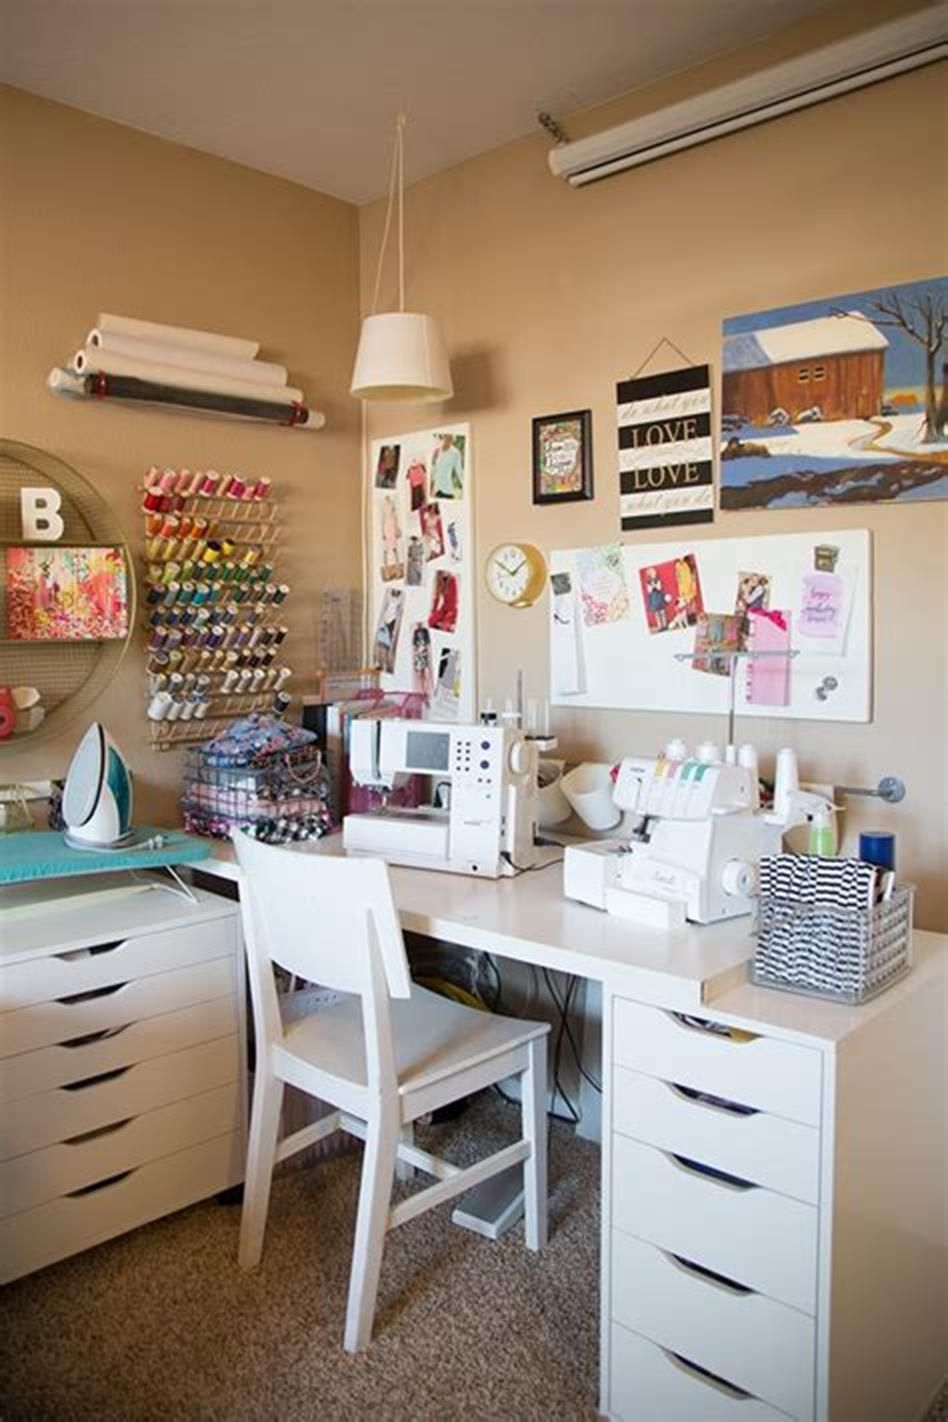 40 Best Small Craft Room And Sewing Room Design Ideas On A Budget